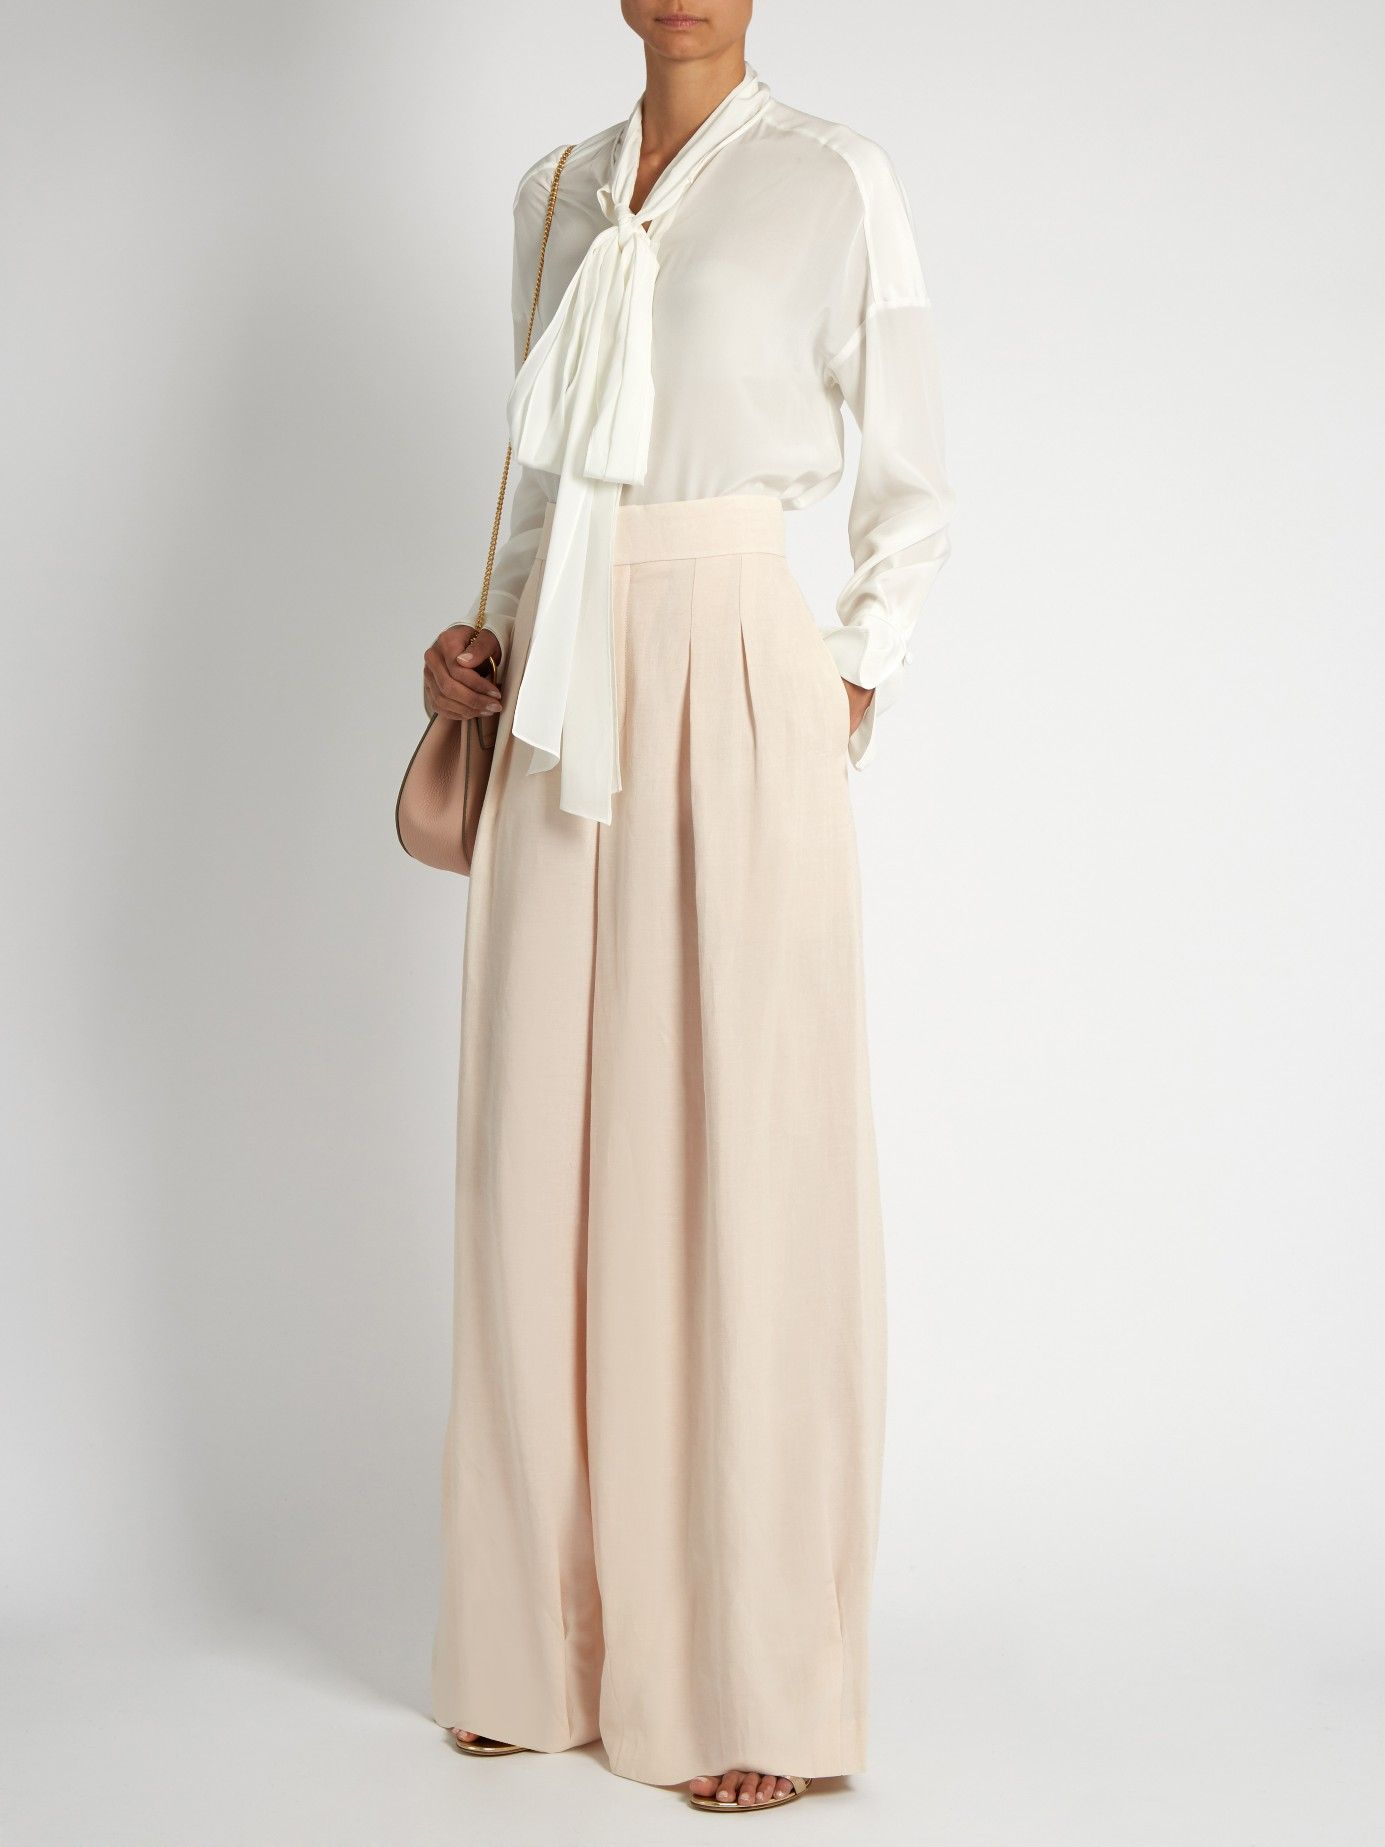 Pleat-front wide-leg crepe trousers | Chloé | MATCHESFASHION.COM US